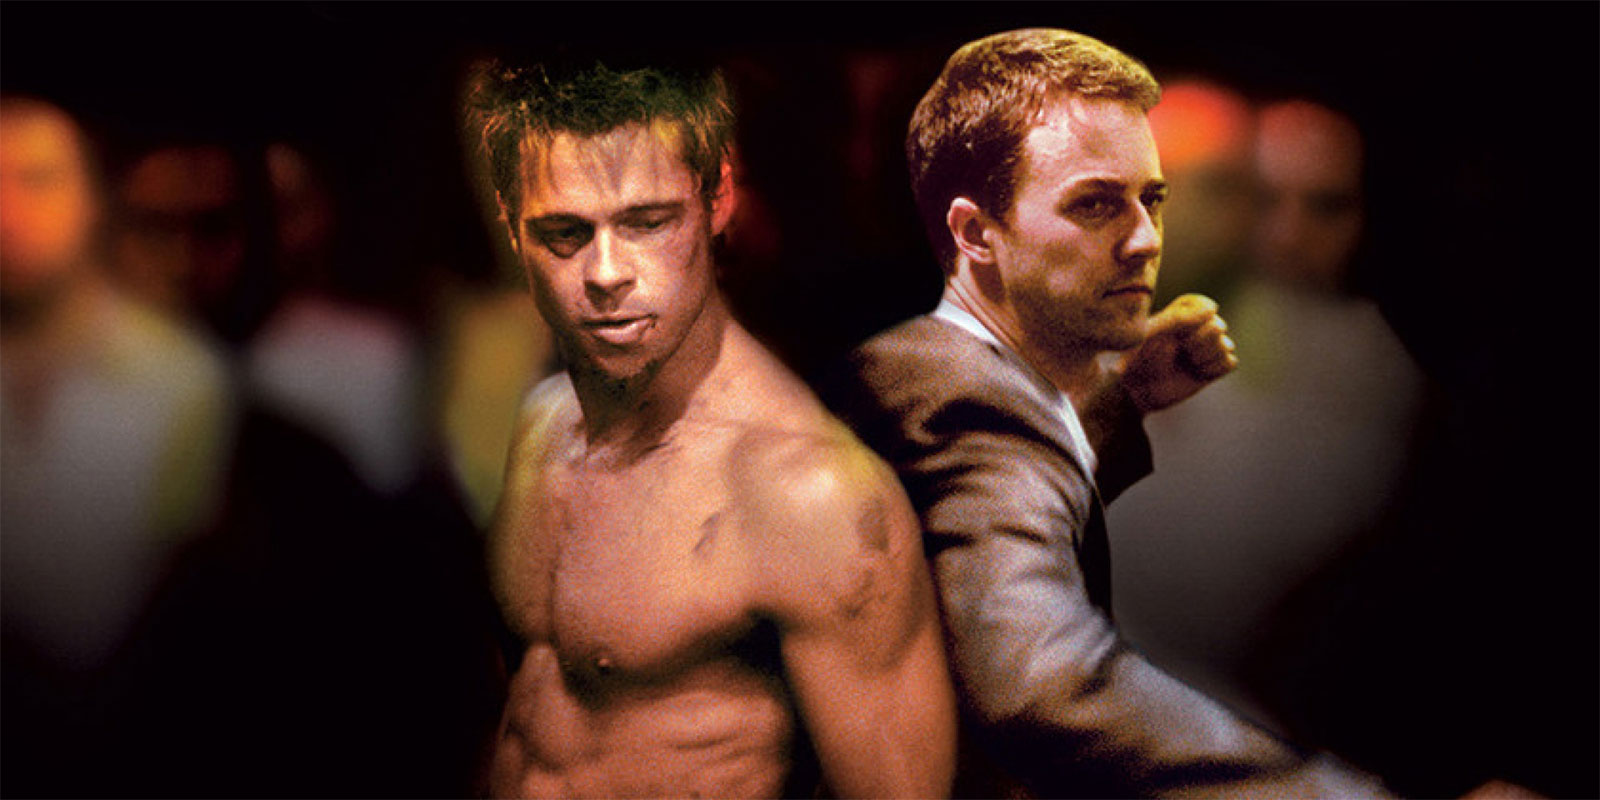 What happens after fight club